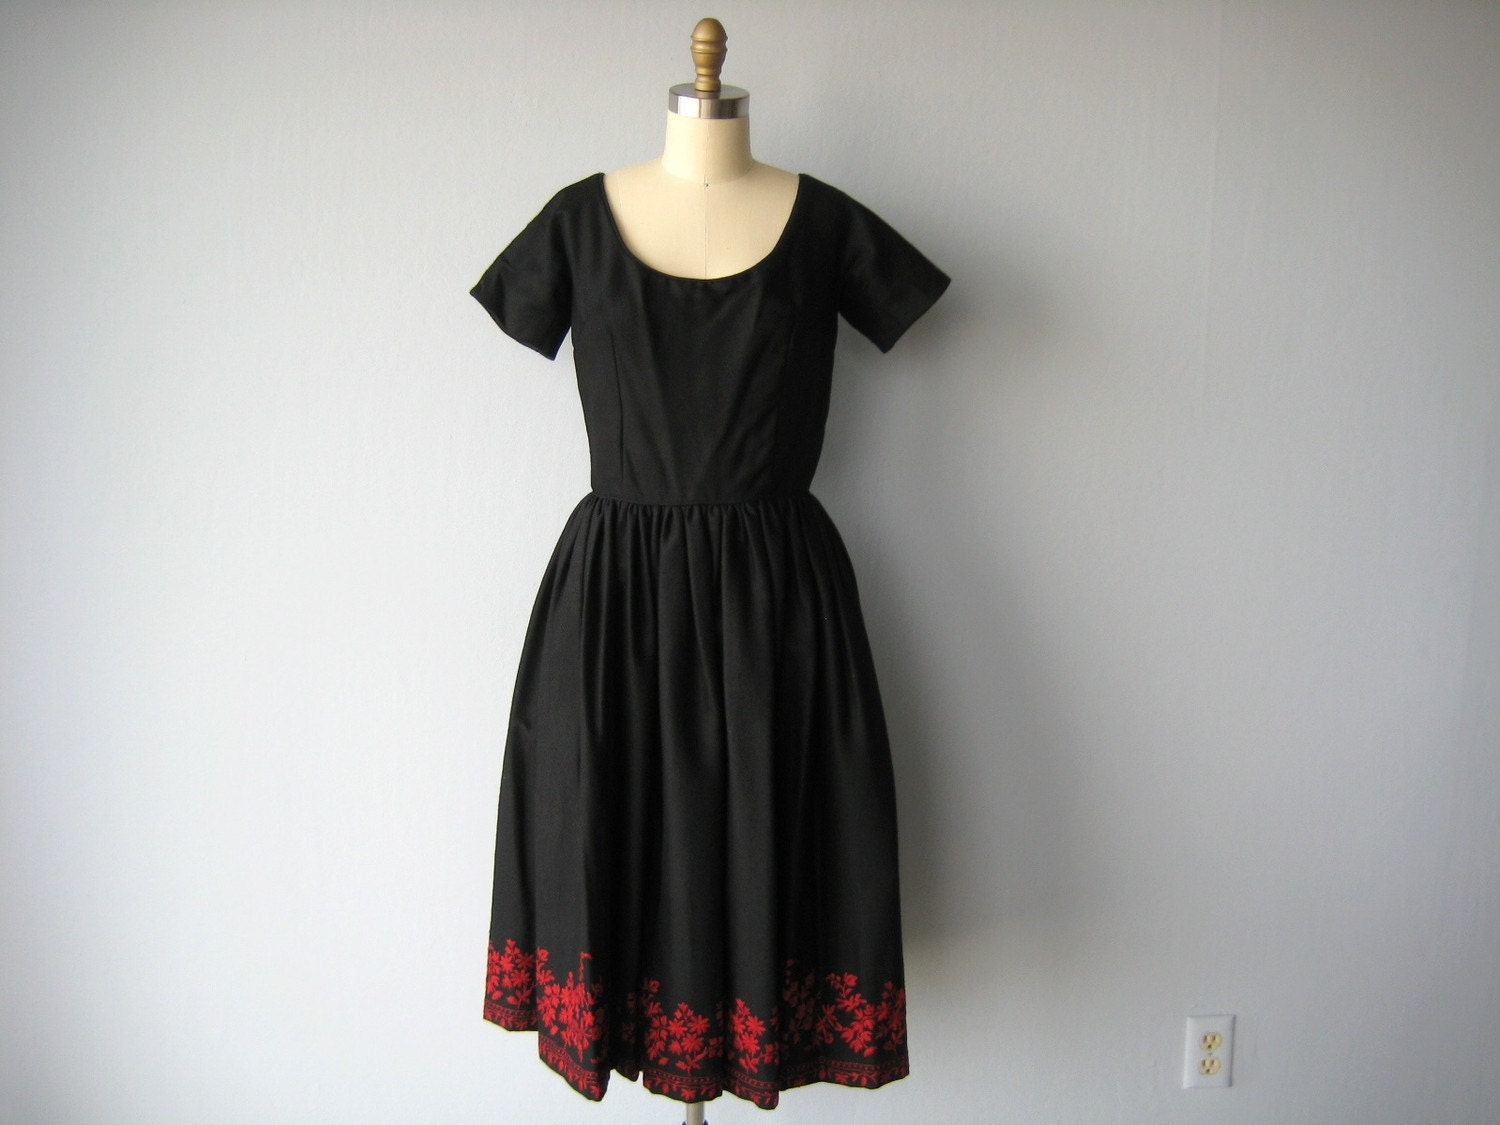 1950s vintage CREWEL EMBROIDERED wool dress